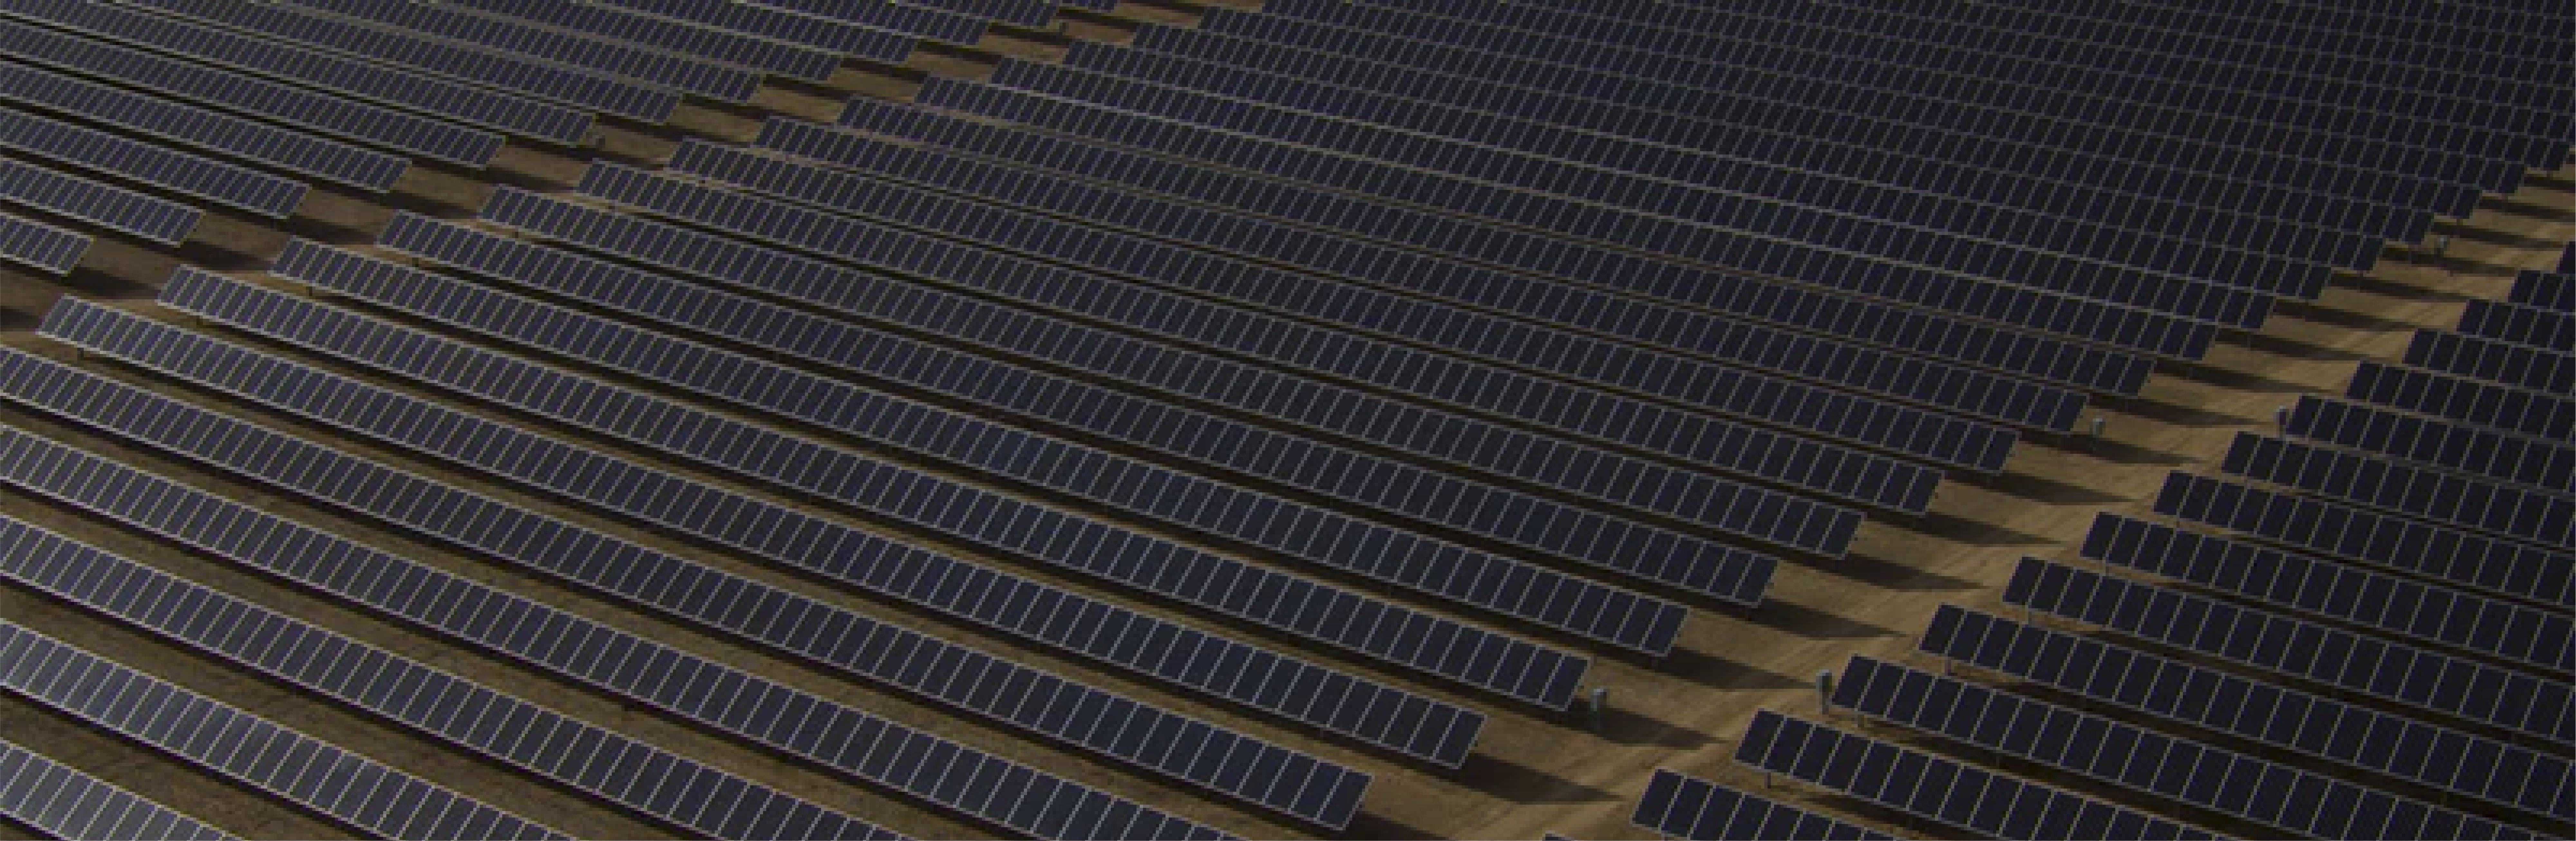 The Alice Willing To Fork Out For A Solar Farm While Government Dithers